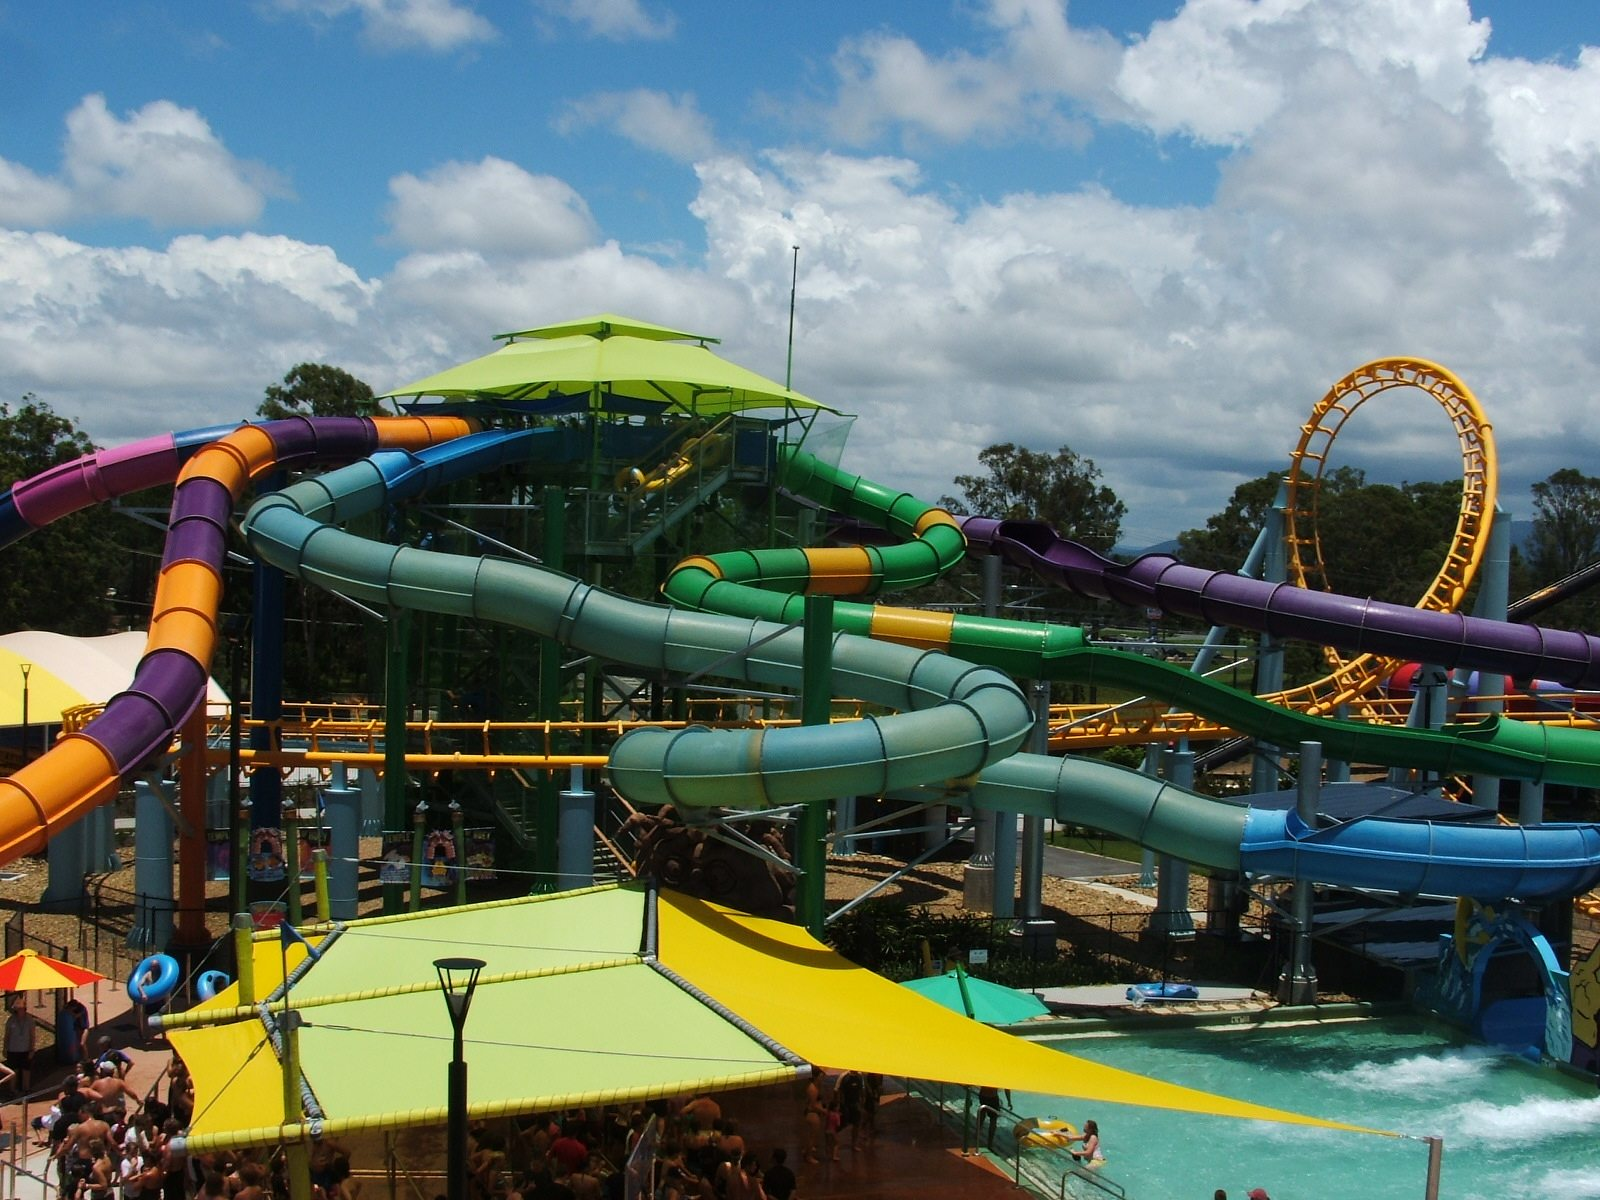 Top 3 Waterparks in the U.S.